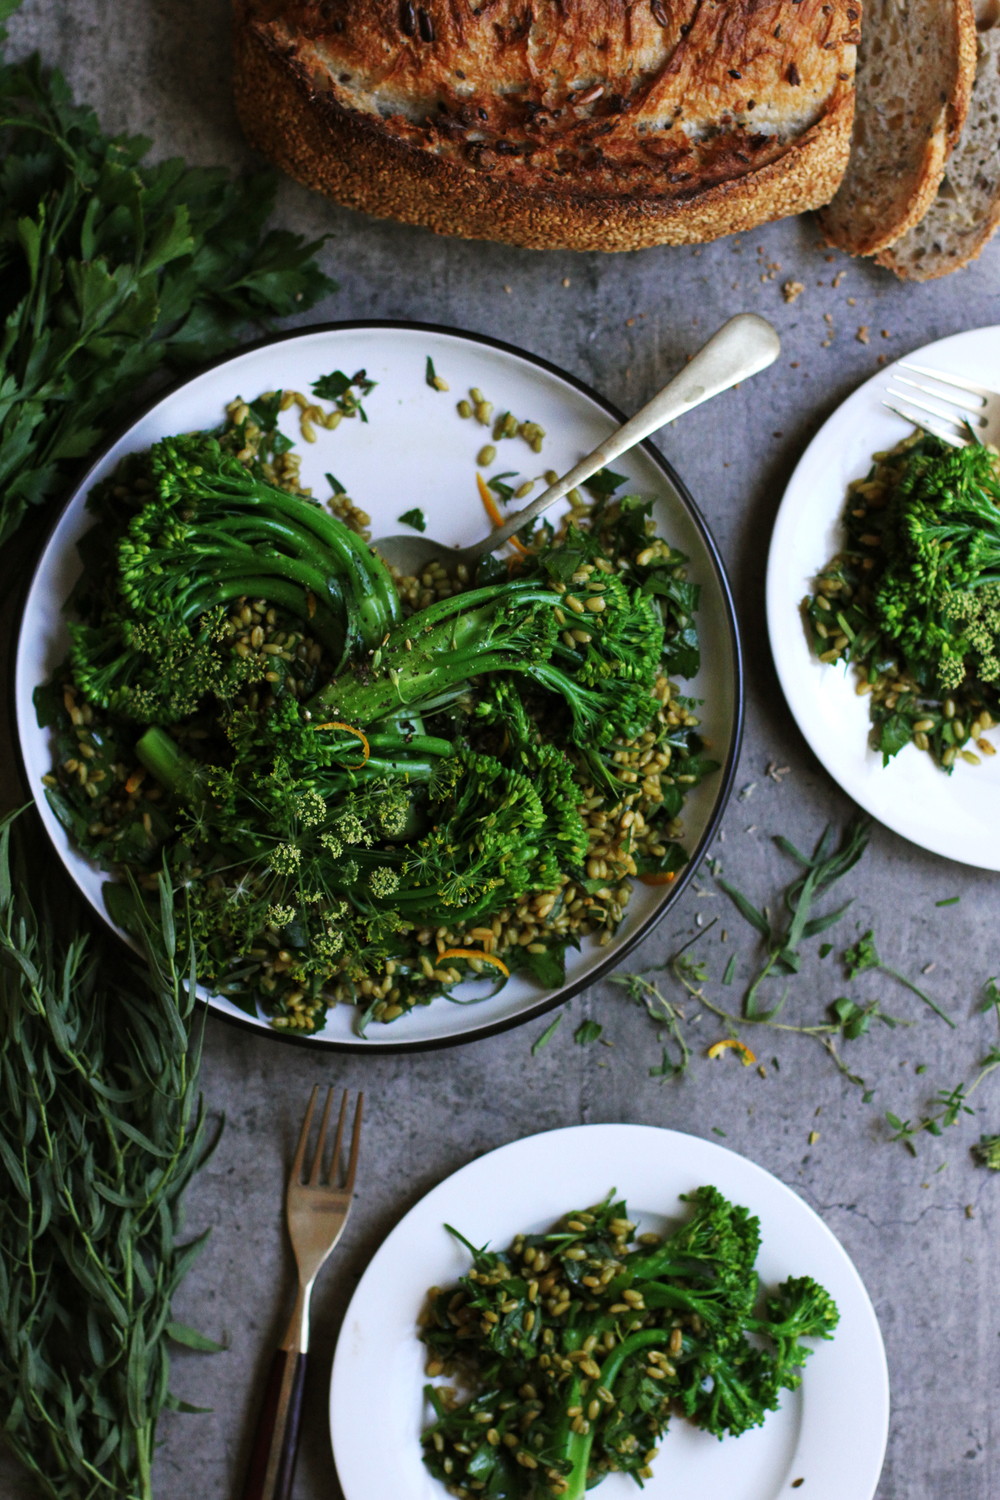 Broccolini with Lavender, Tarragon & Parsley⎜The Botanical Kitchen